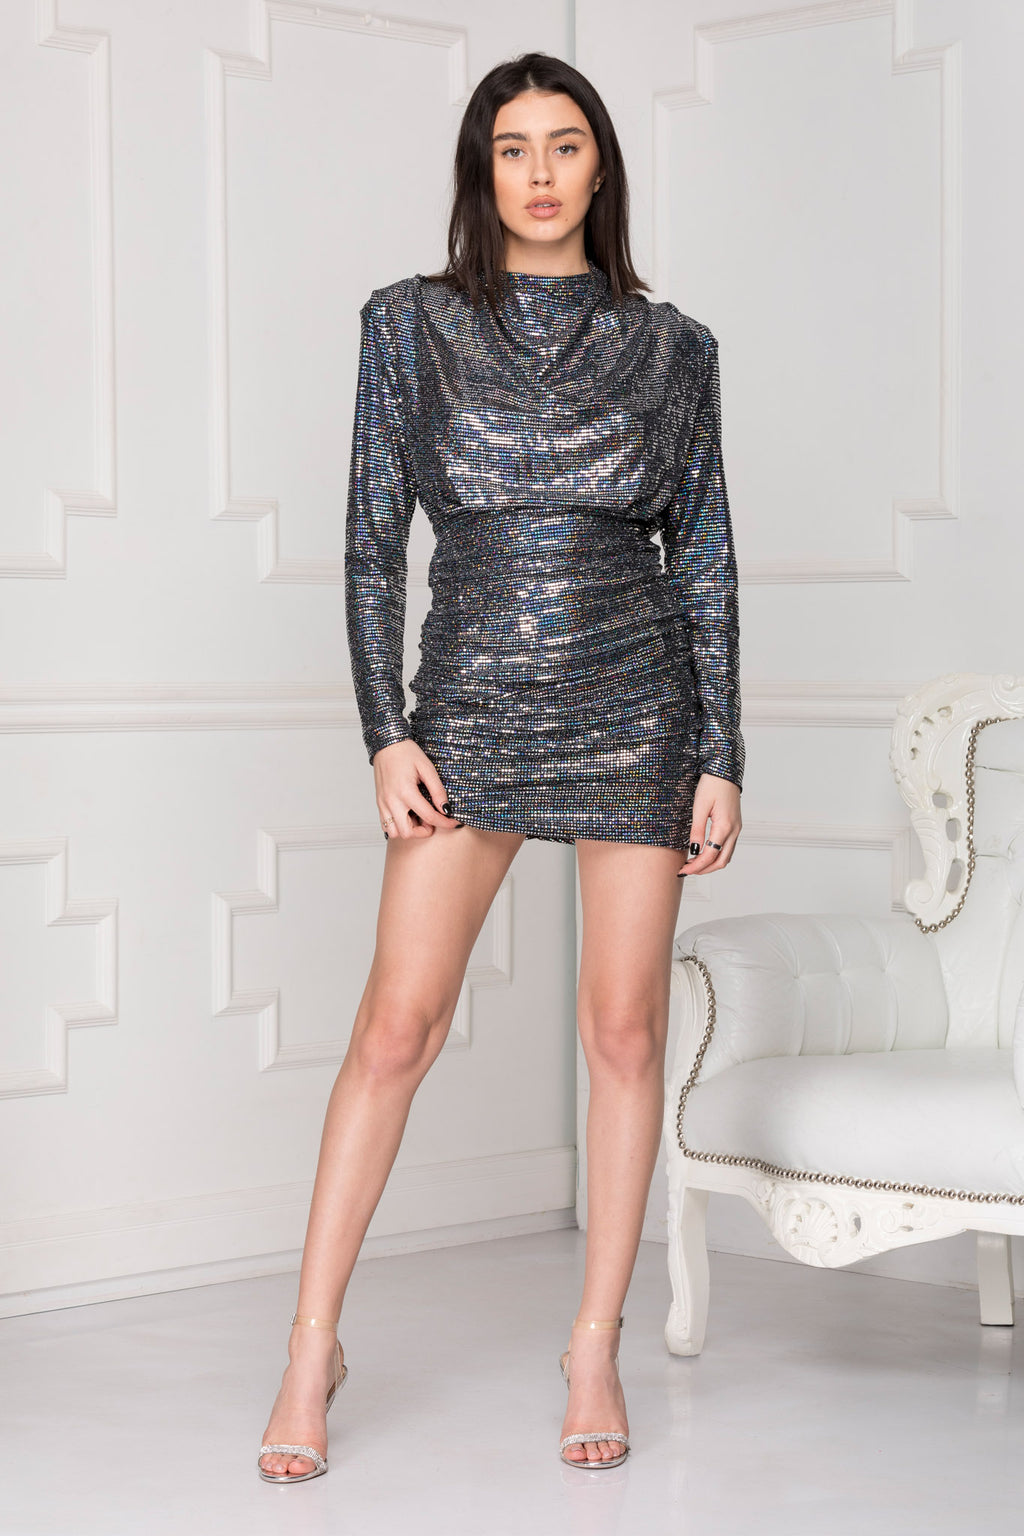 Katia Mini Sequins Dress full body.